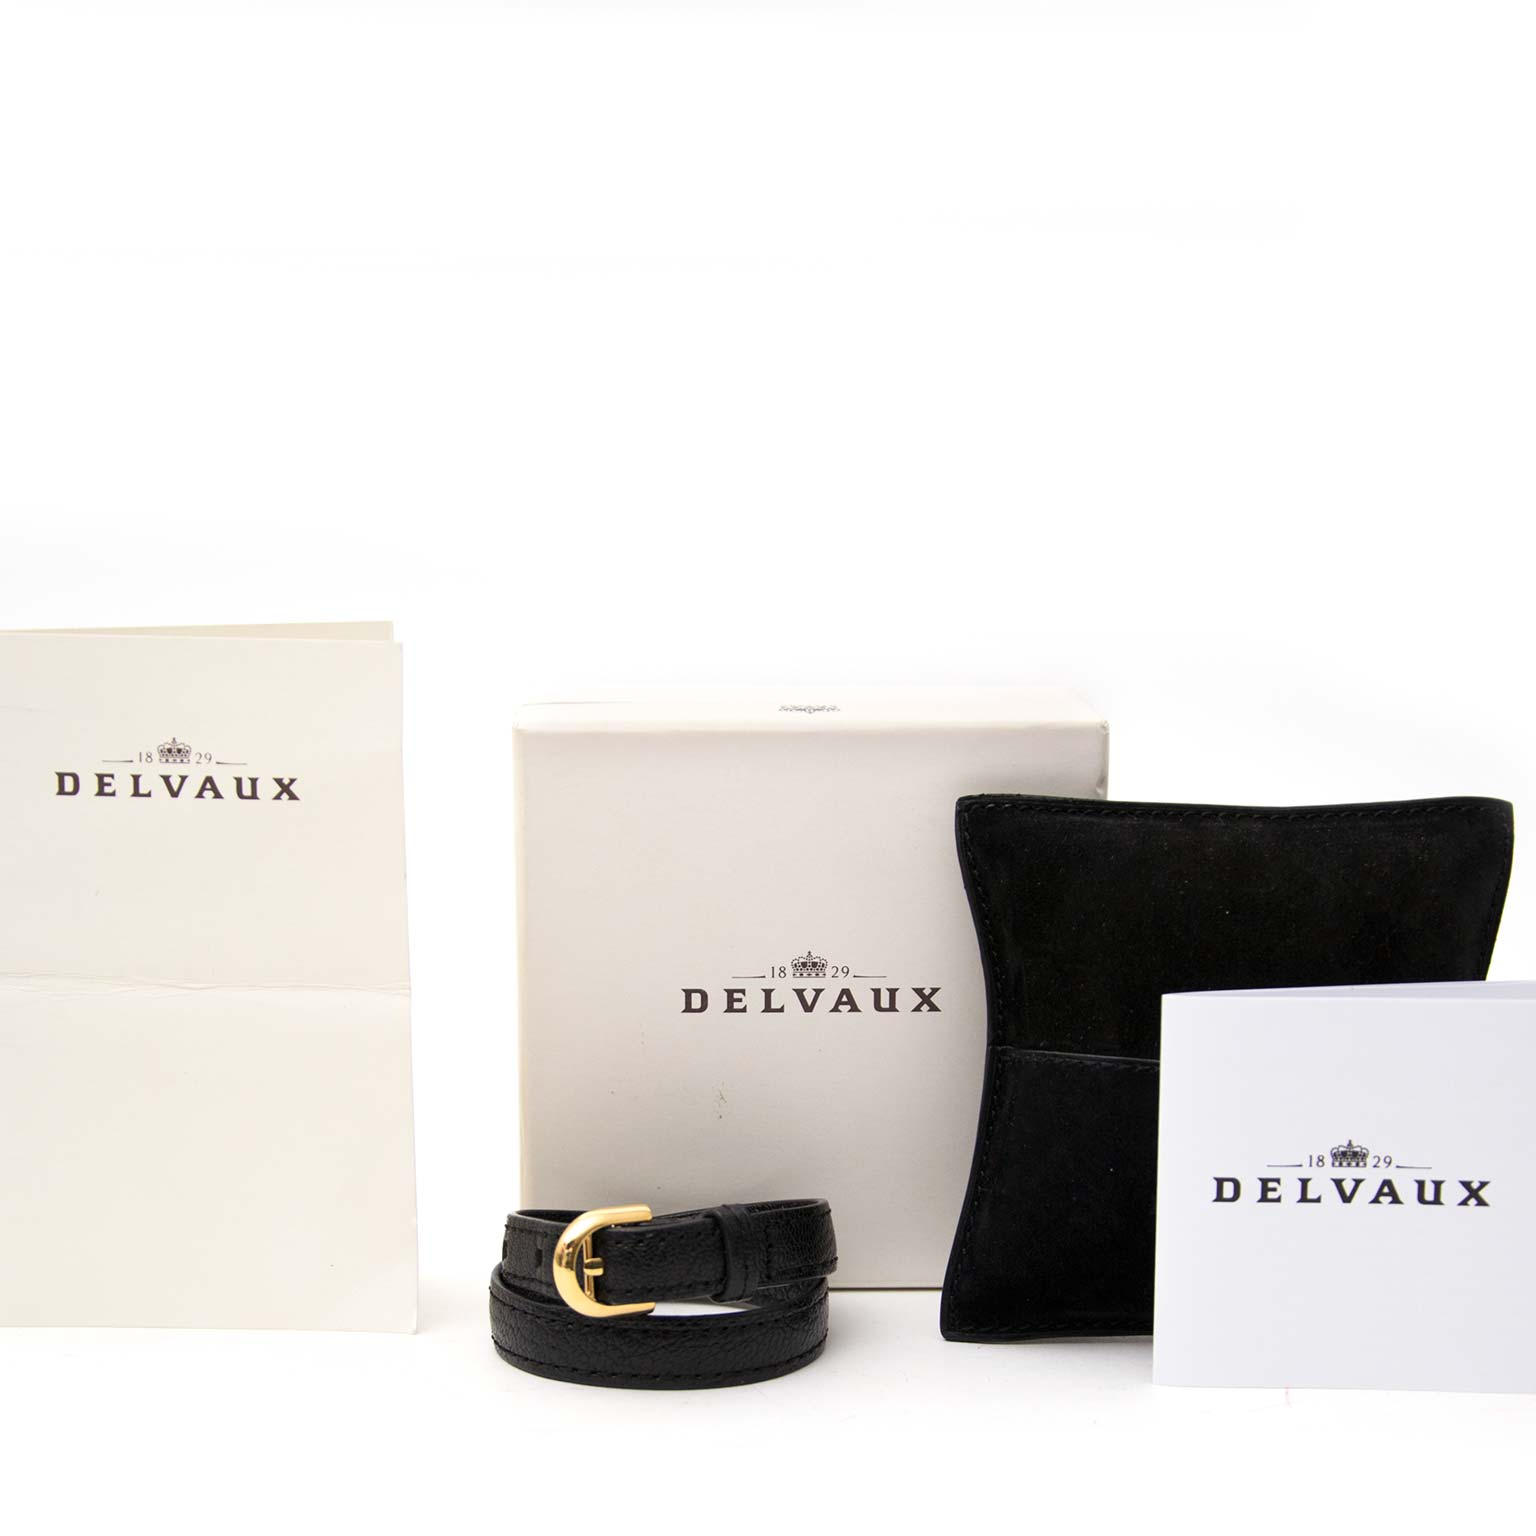 Are you interested in an authentic Delvaux Brillant Double Tour Bracelet?